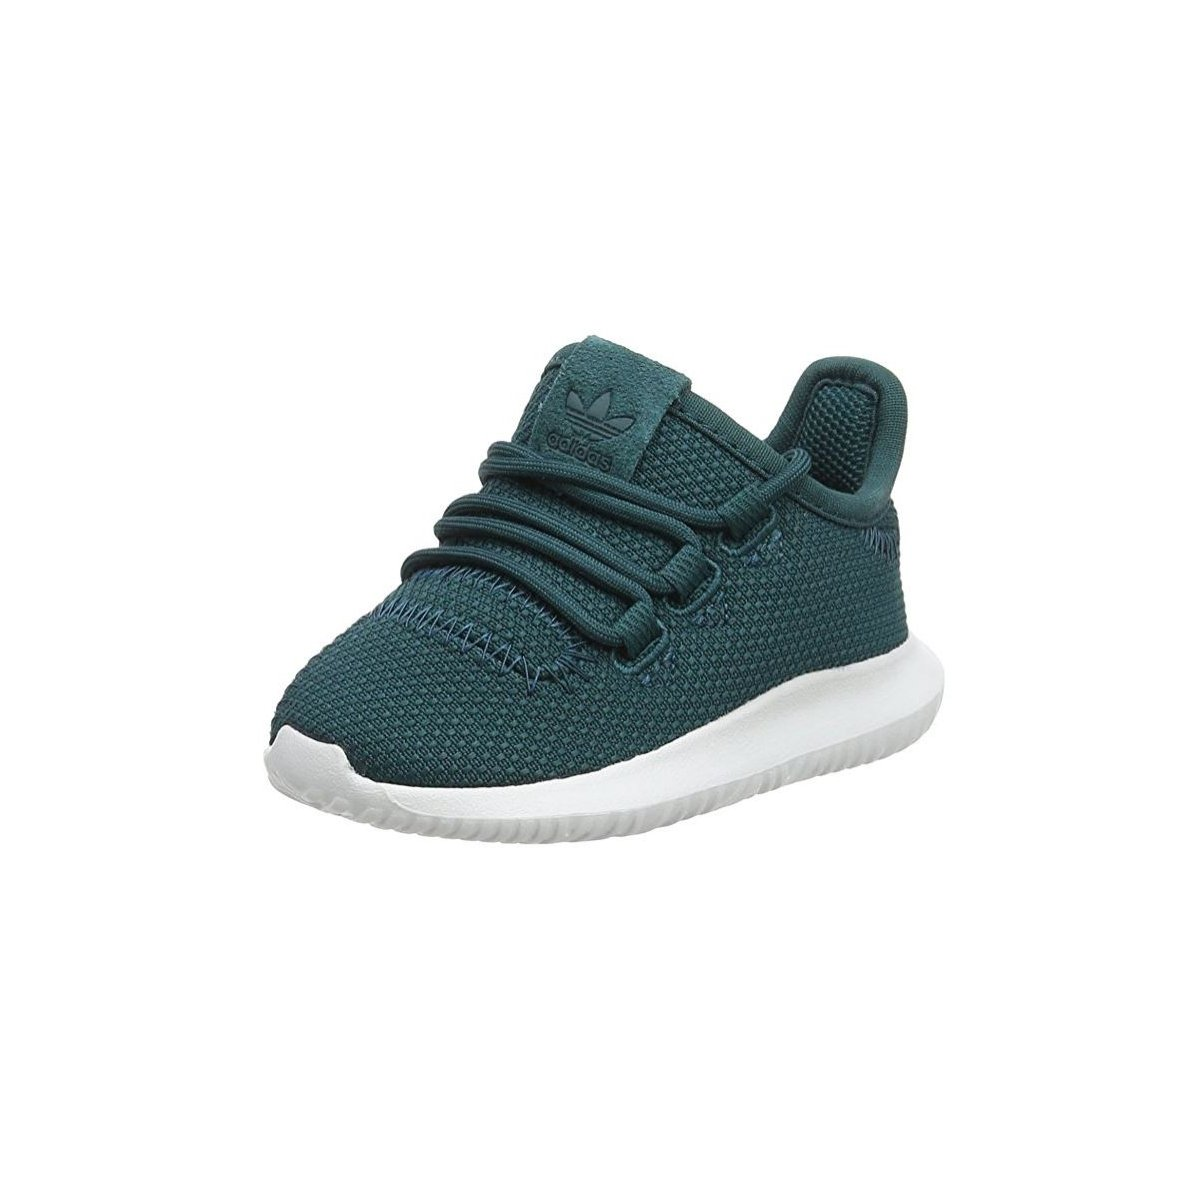 check out 76aae 611b4 Scarpe baby sneakers ADIDAS TUBULAR SHADOW in tessuto verde BB6759